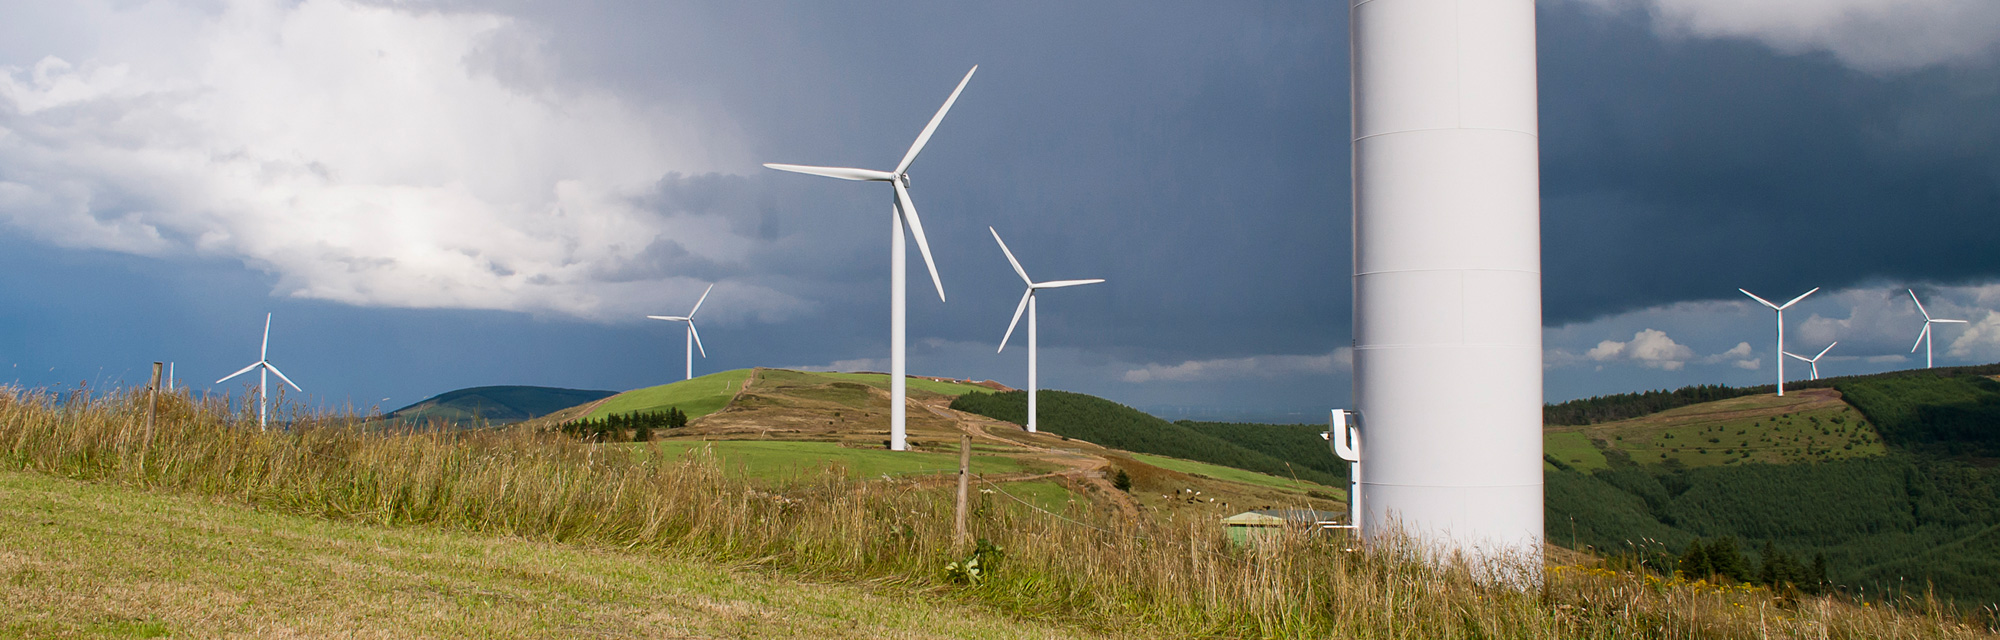 Windpark, wind farm